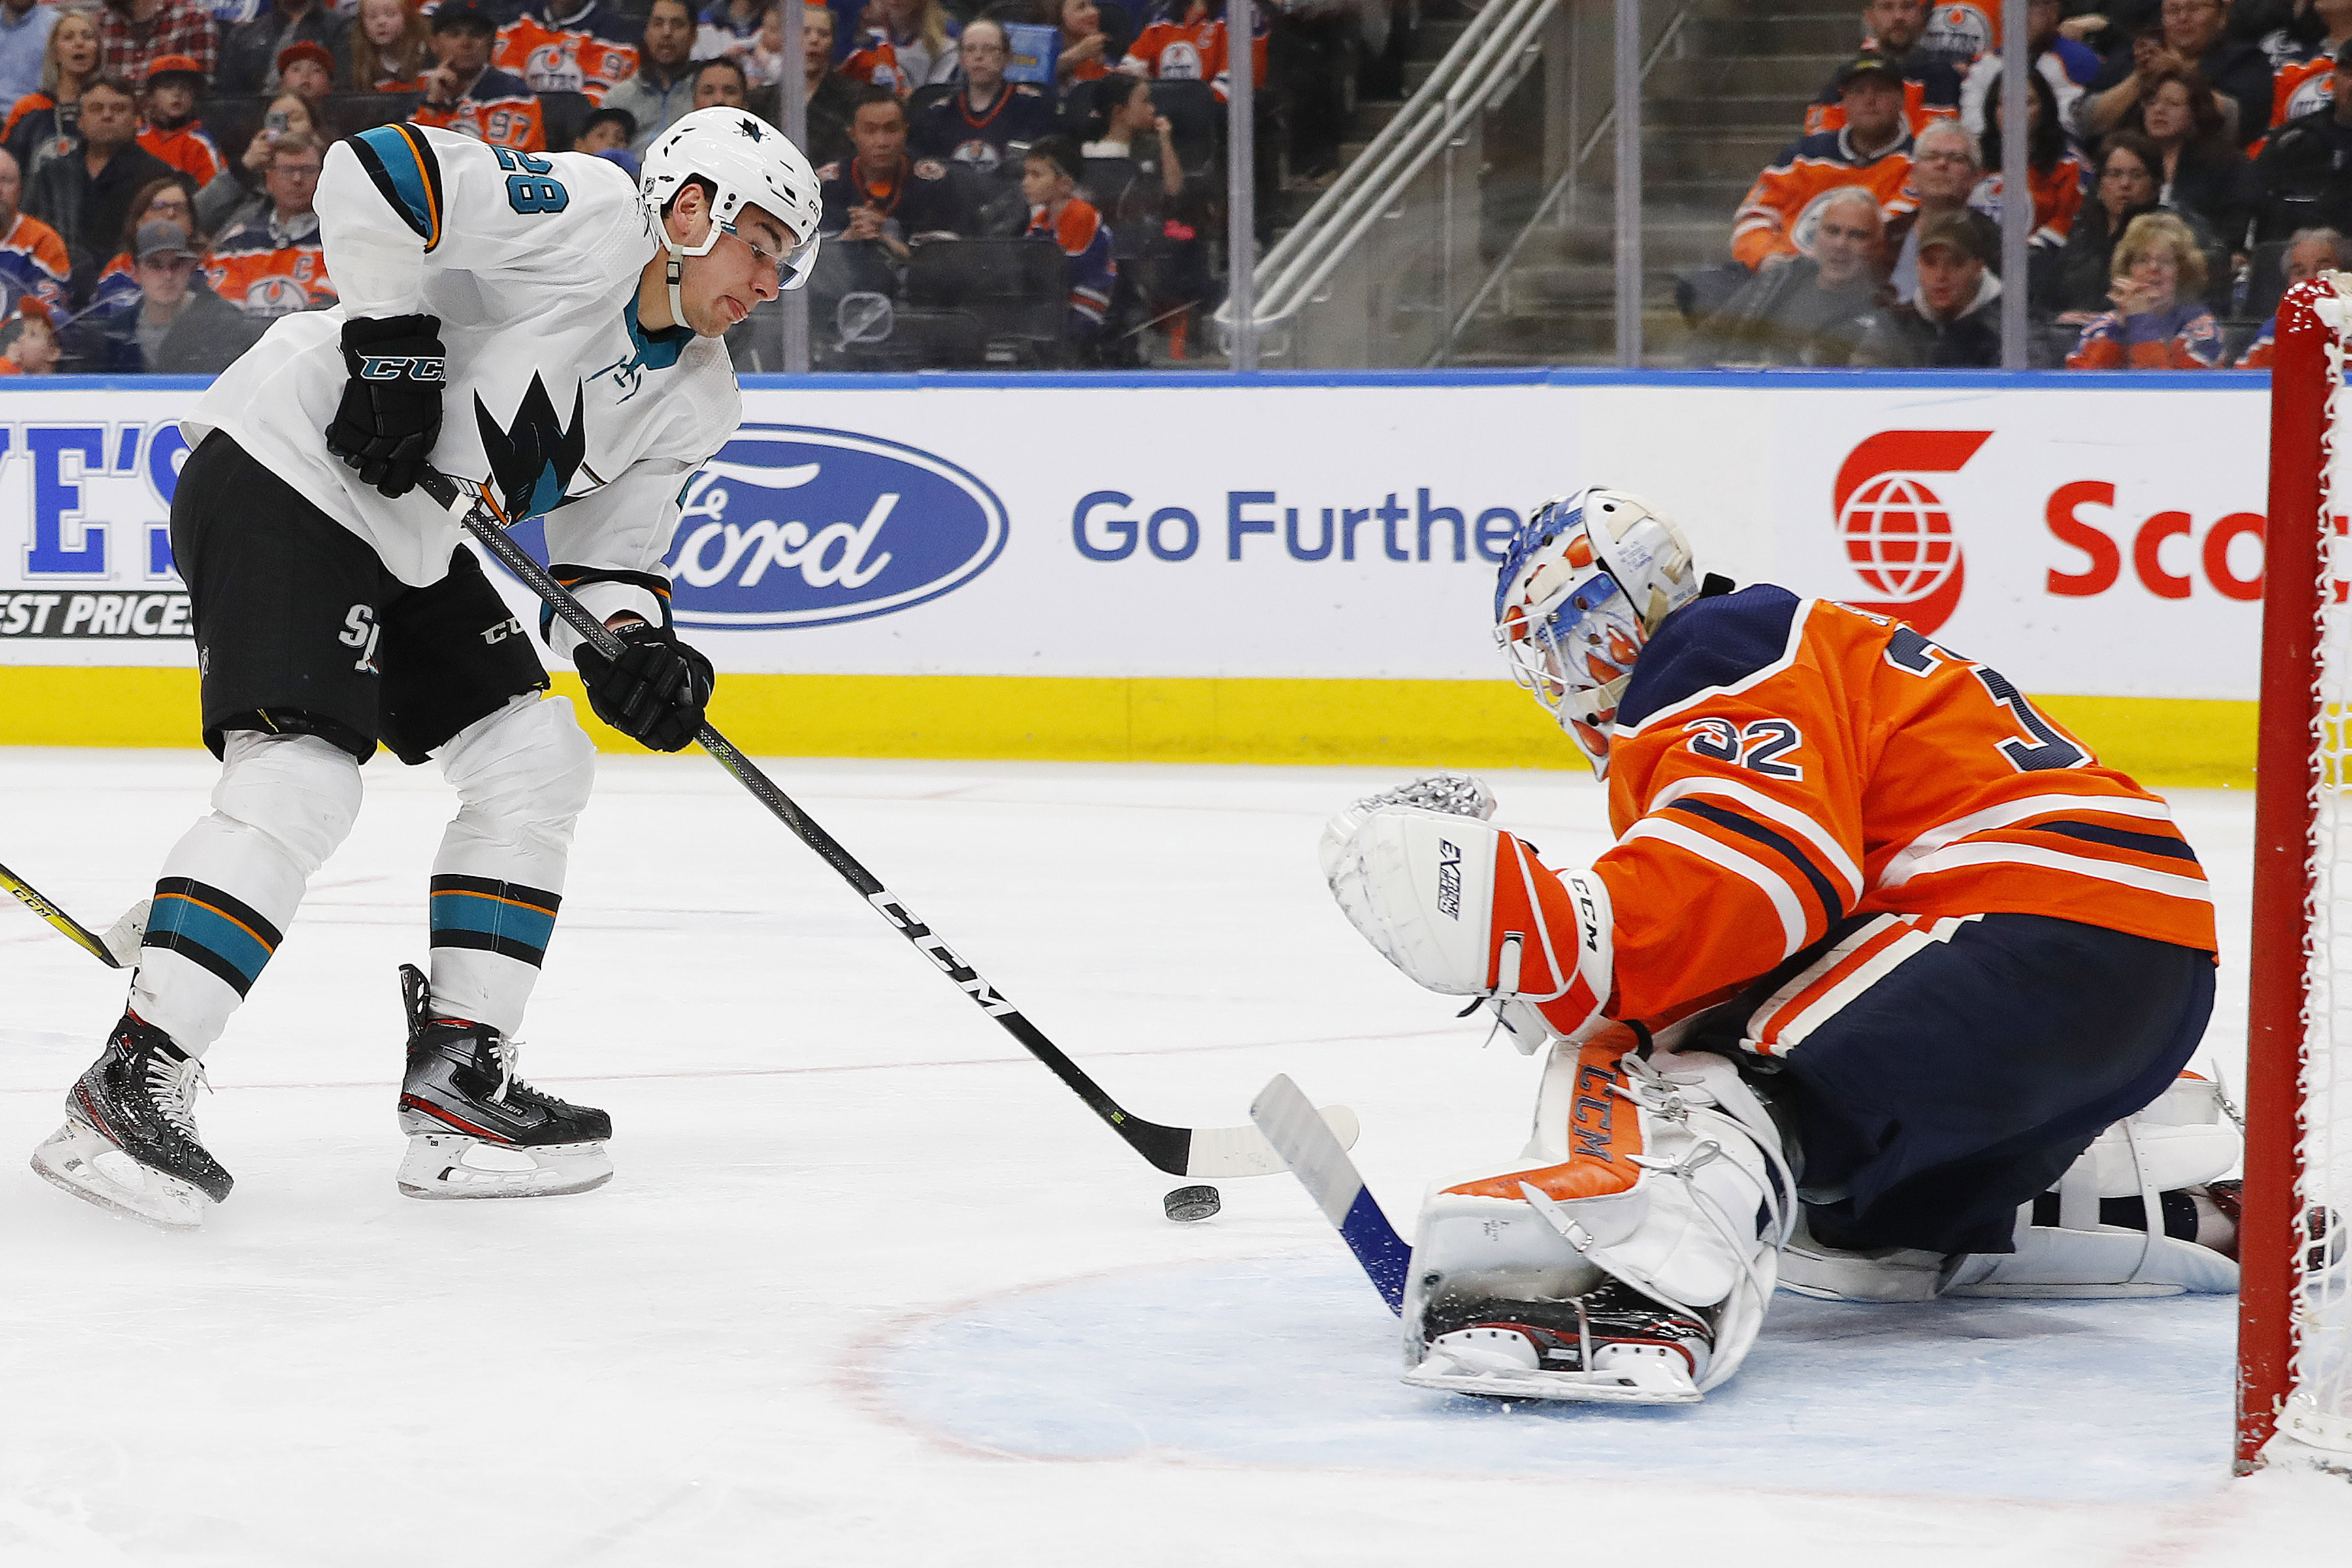 San Jose Sharks forward Timo Meier (28) is stopped by Edmonton Oilers goaltender Anthony Stolarz (32) during the second periodat Rogers Place.